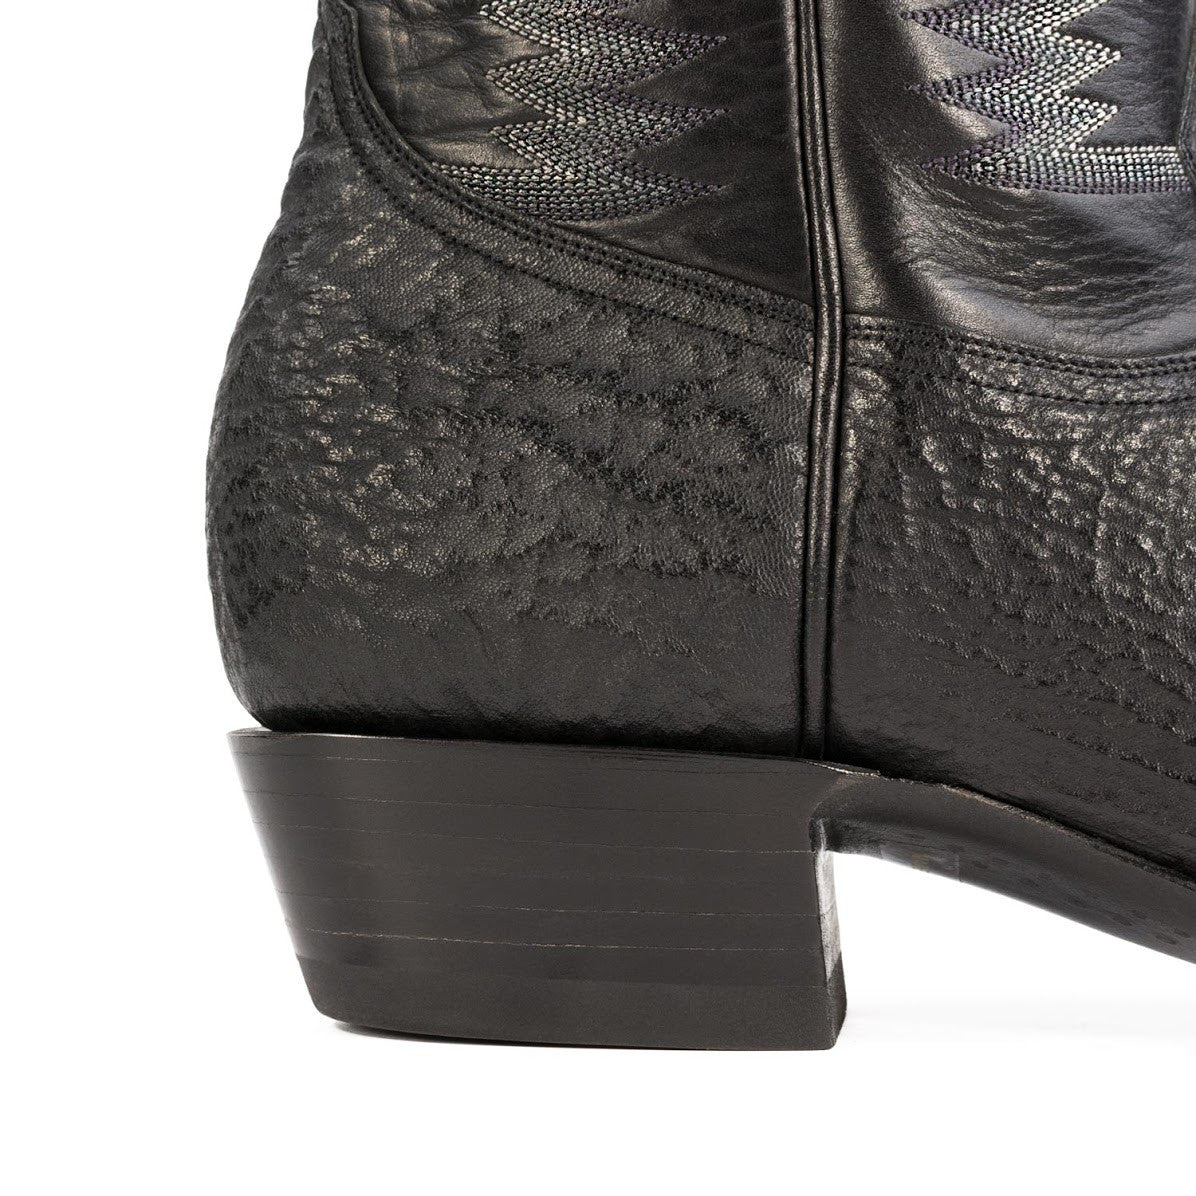 shark boot in black french toe heritage boot shark boot in black french toe